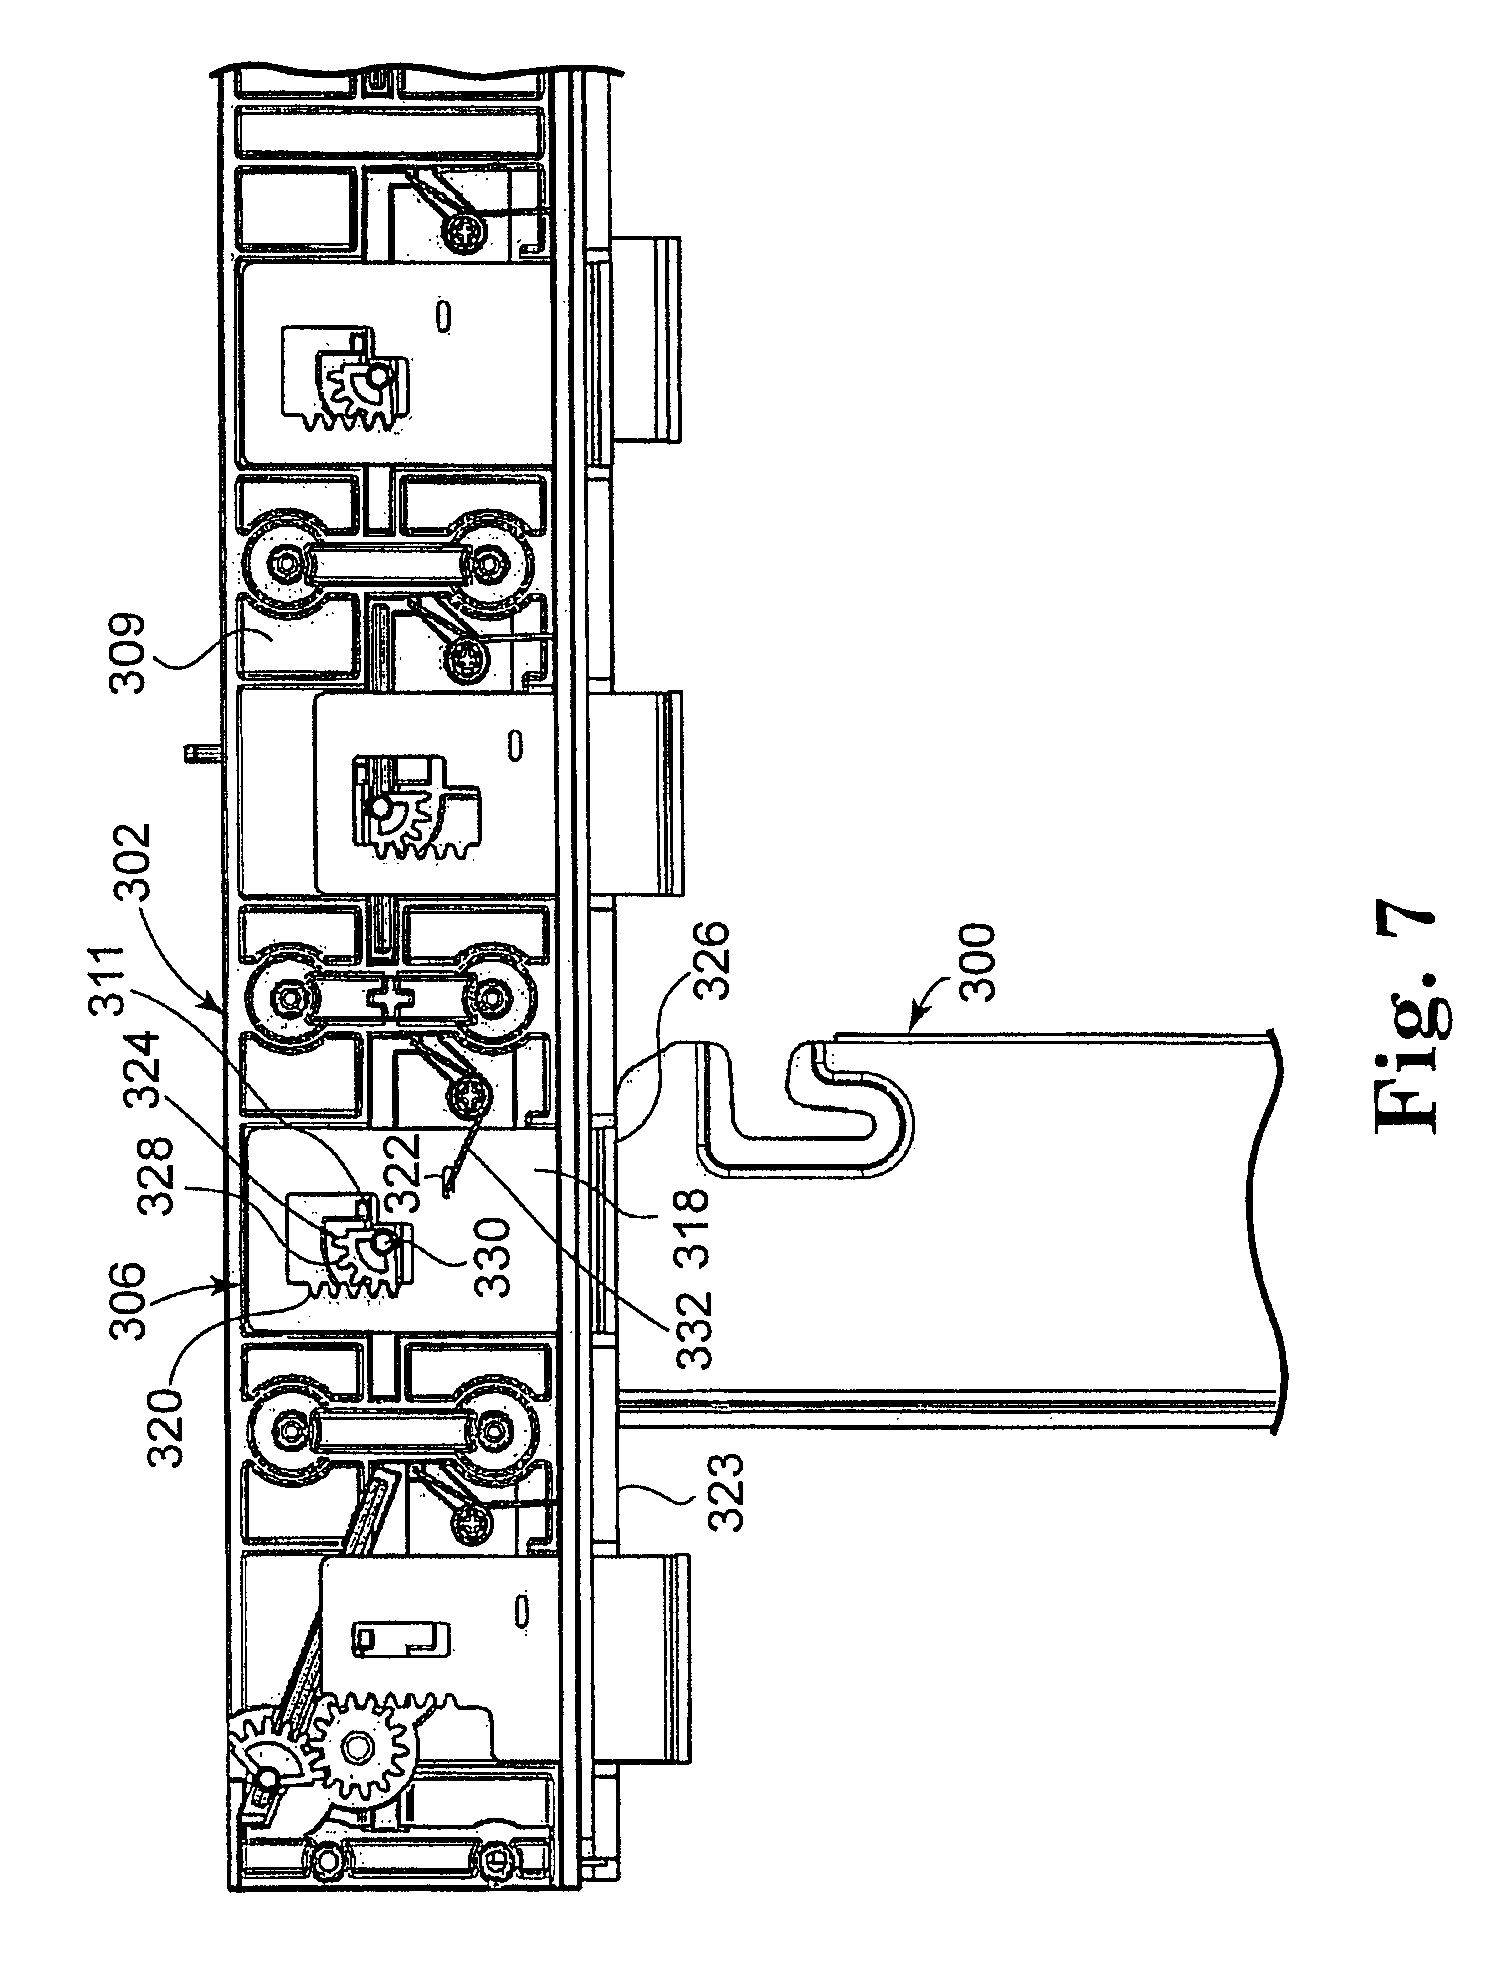 2014 likewise US6379119 also Induction Heater Circuit Using Igbt likewise RepairGuideContent together with P 0996b43f81b3c799. on electronic actuator